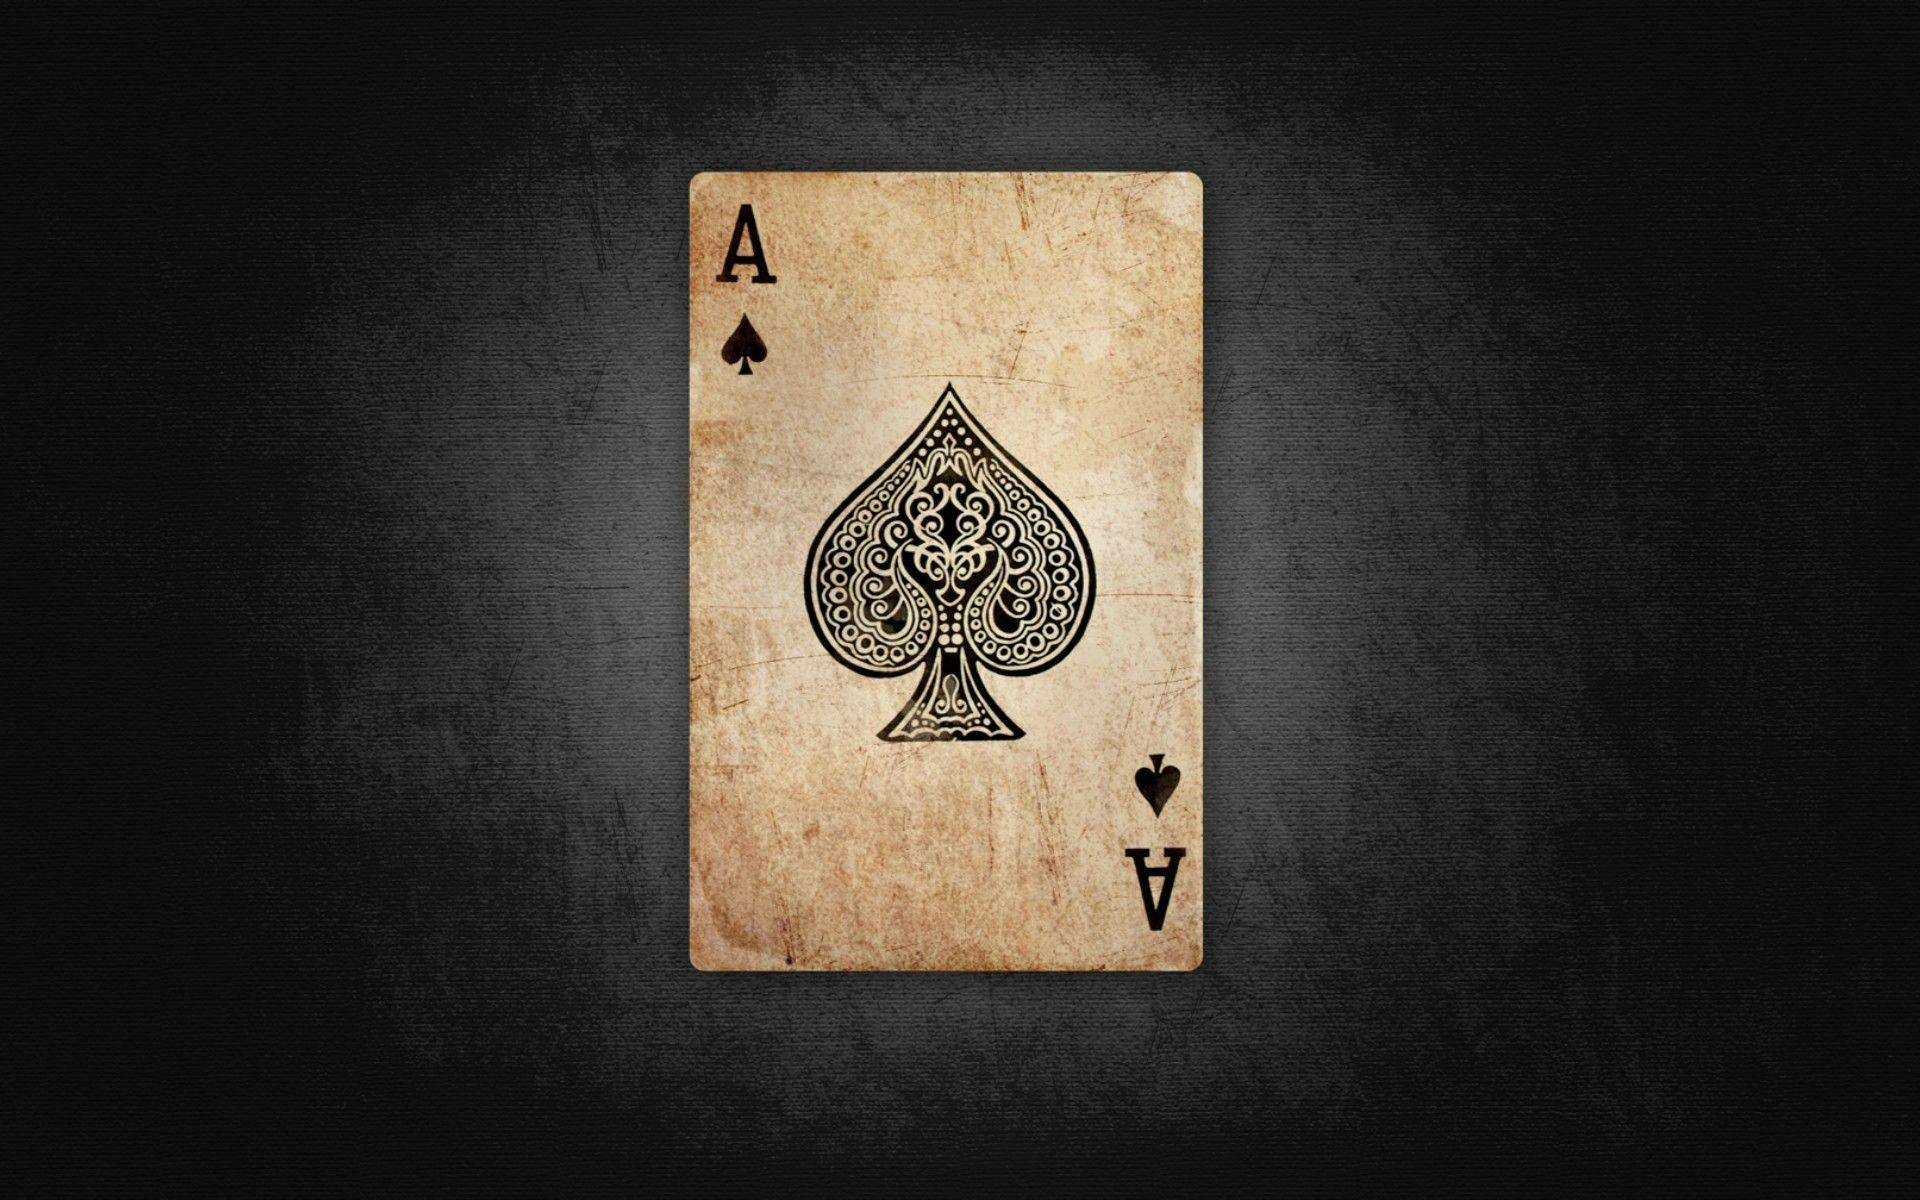 ace of spade wallpaper  Ace Of Spades Wallpapers - Wallpaper Cave